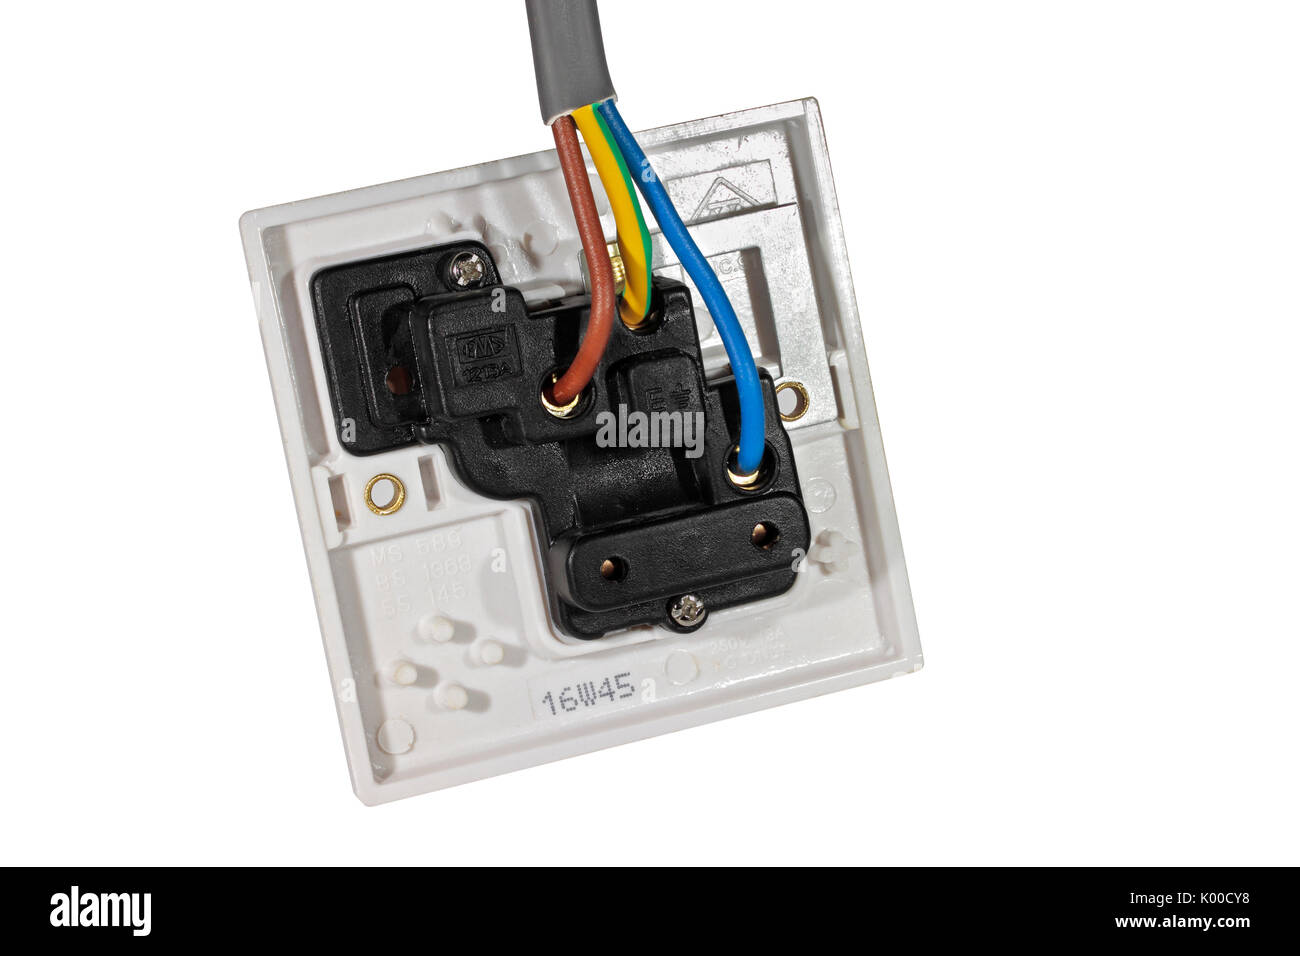 a 250v 13a electrical socket outlet viewed from behind showing rh alamy com